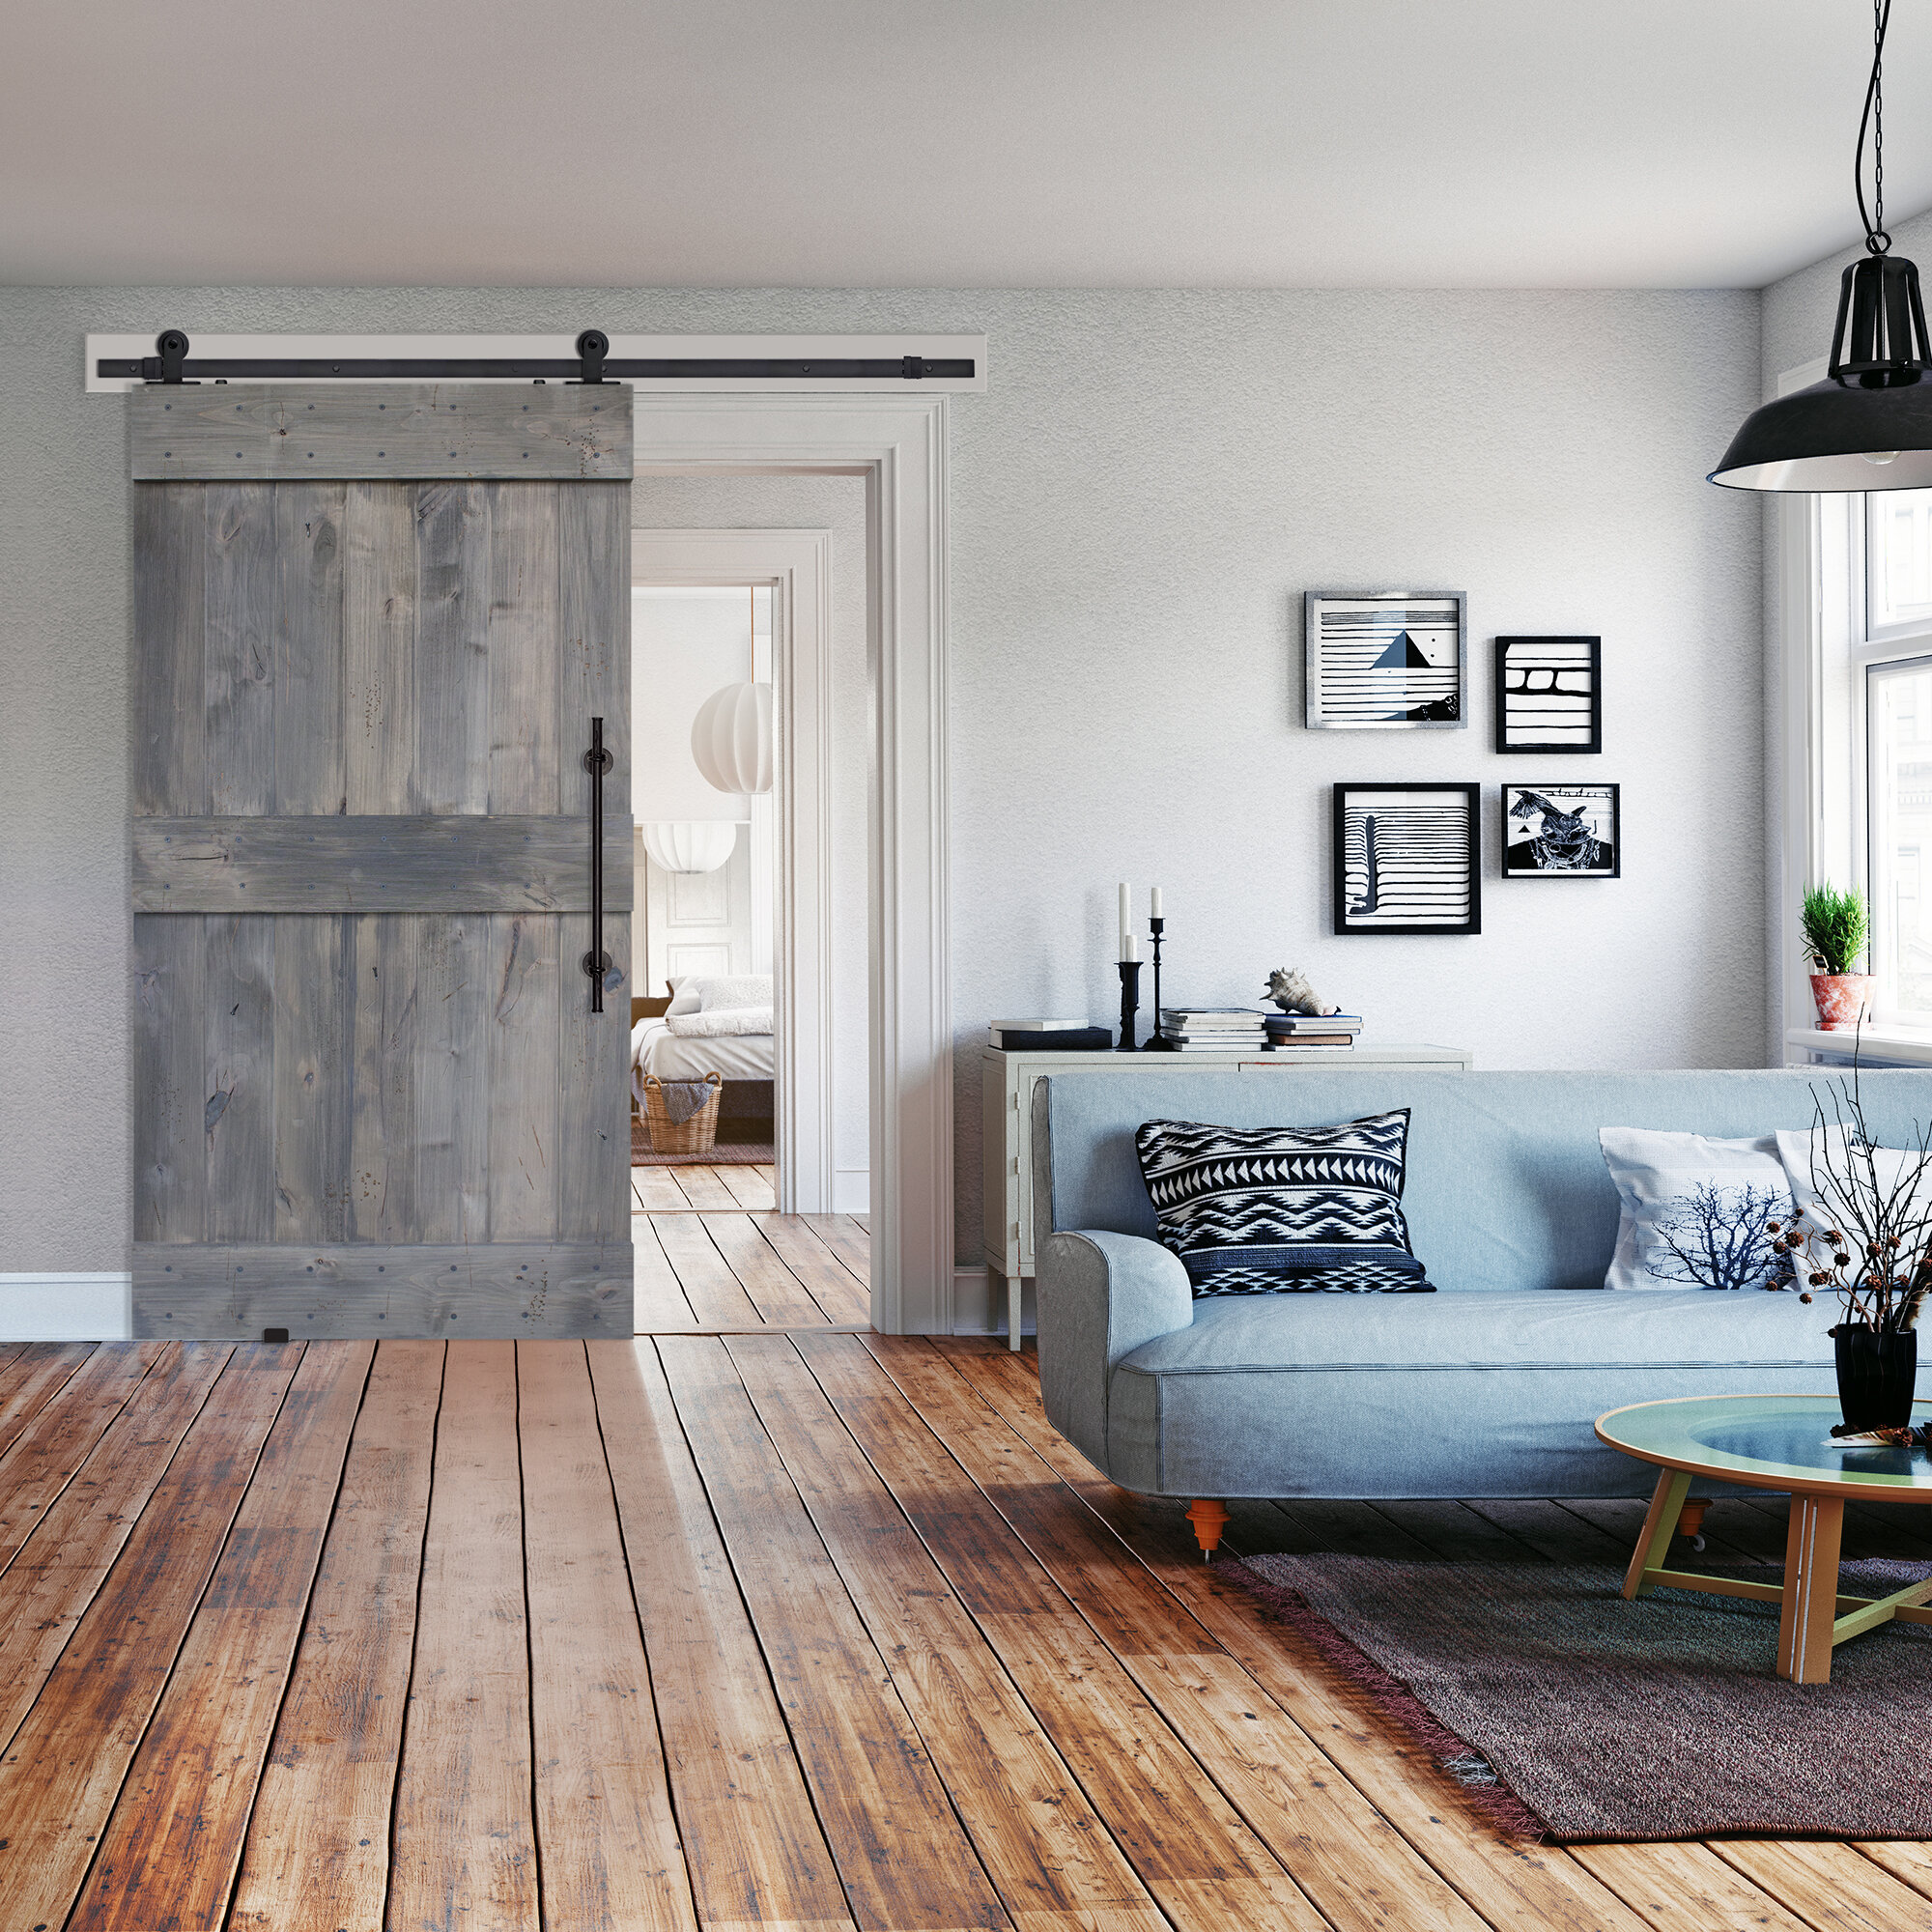 How To Install Barn Doors For Beginners